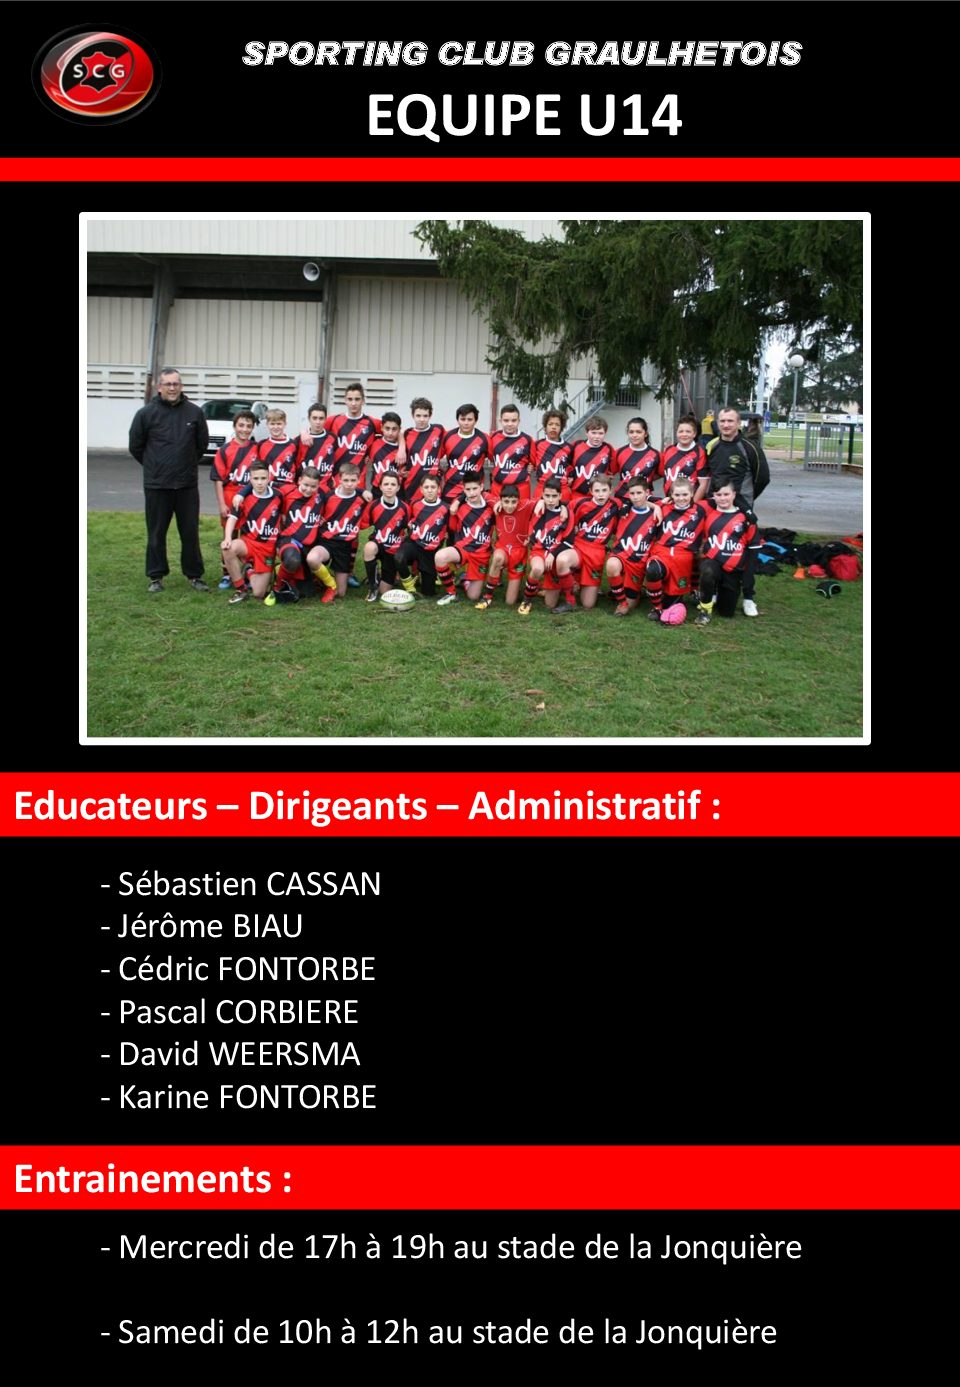 http://scg-rugby.com/wp-content/uploads/2018/04/U14-GROUPE1-pdf-2.jpg